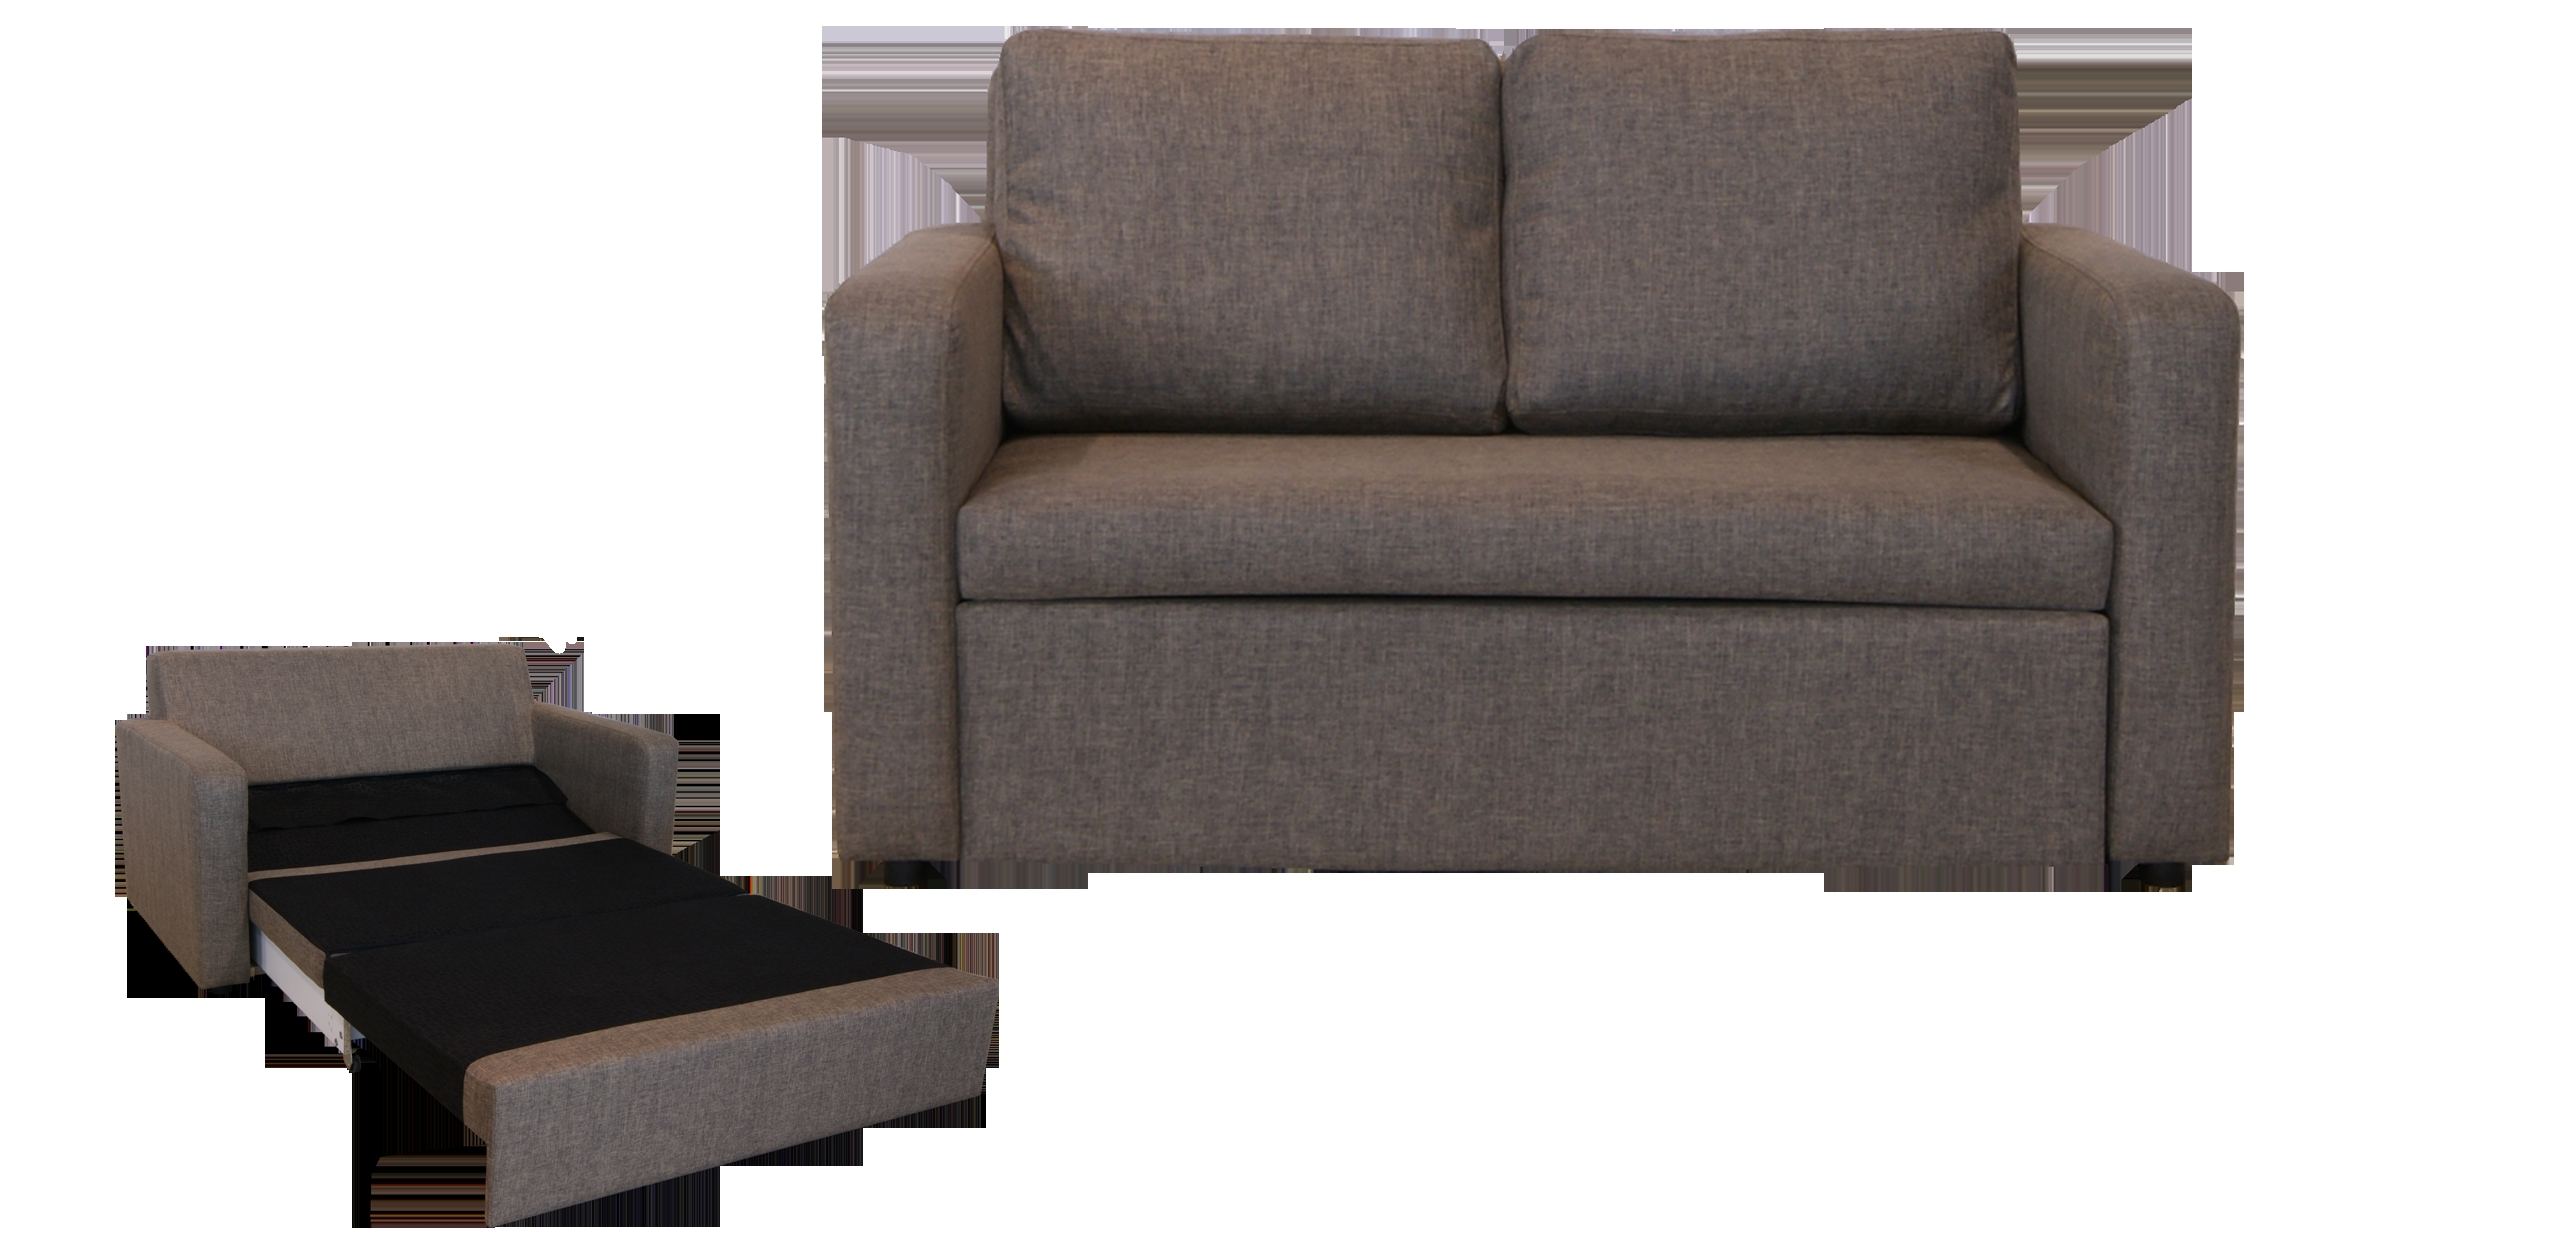 Small 2 Seater Bedroom Sofa • Sofa Bed Regarding Newest Small 2 Seater Sofas (View 9 of 15)